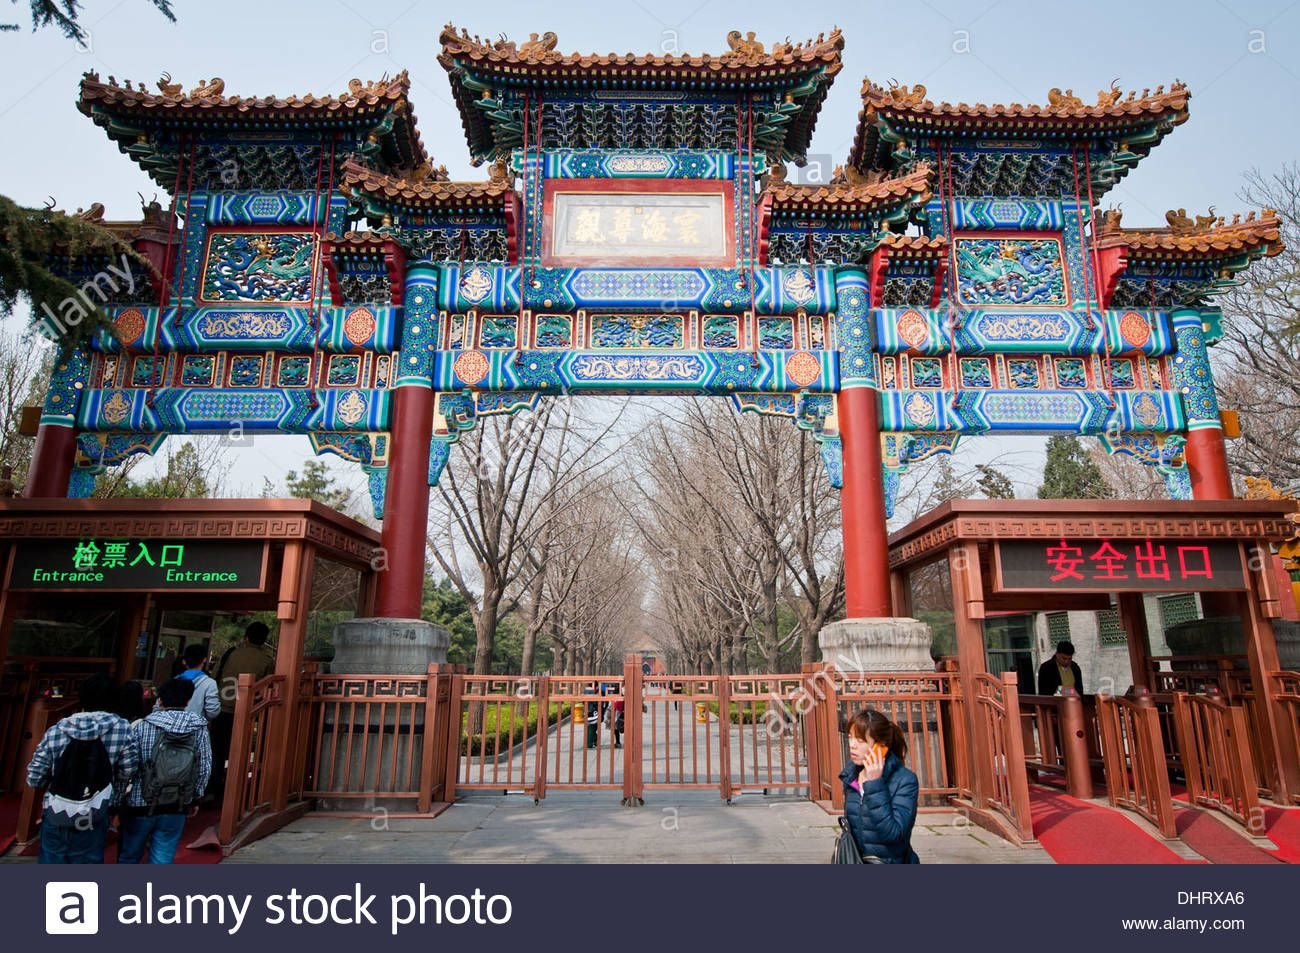 Traditional archway (Paifang or pailou) in Yonghe Temple also known as Yonghe Lamasery or simply Lama Temple in Beijing, China Stock Photo